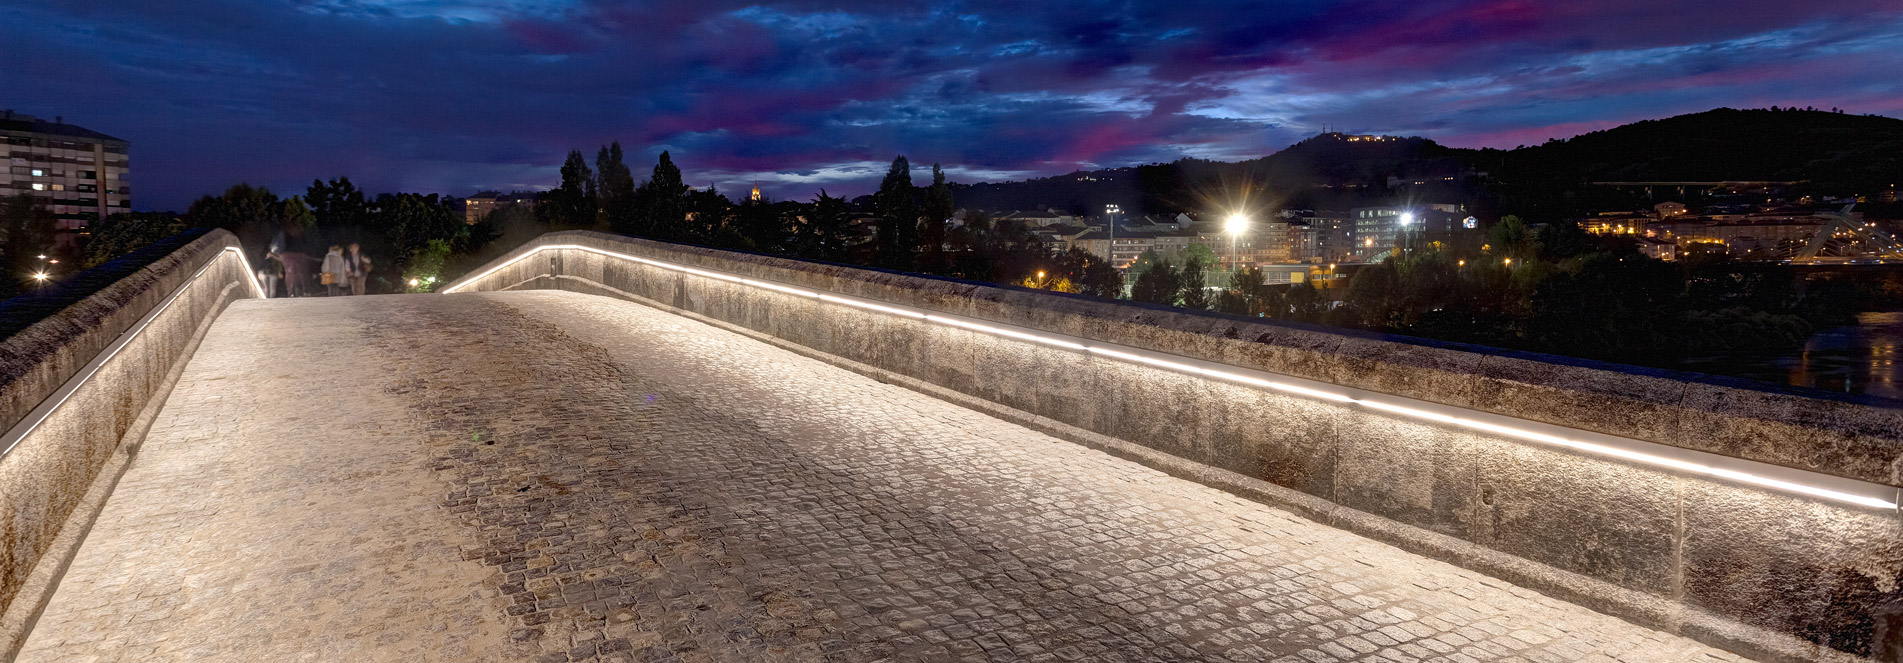 OURENSE ROMAN BRIDGE LIGHTING